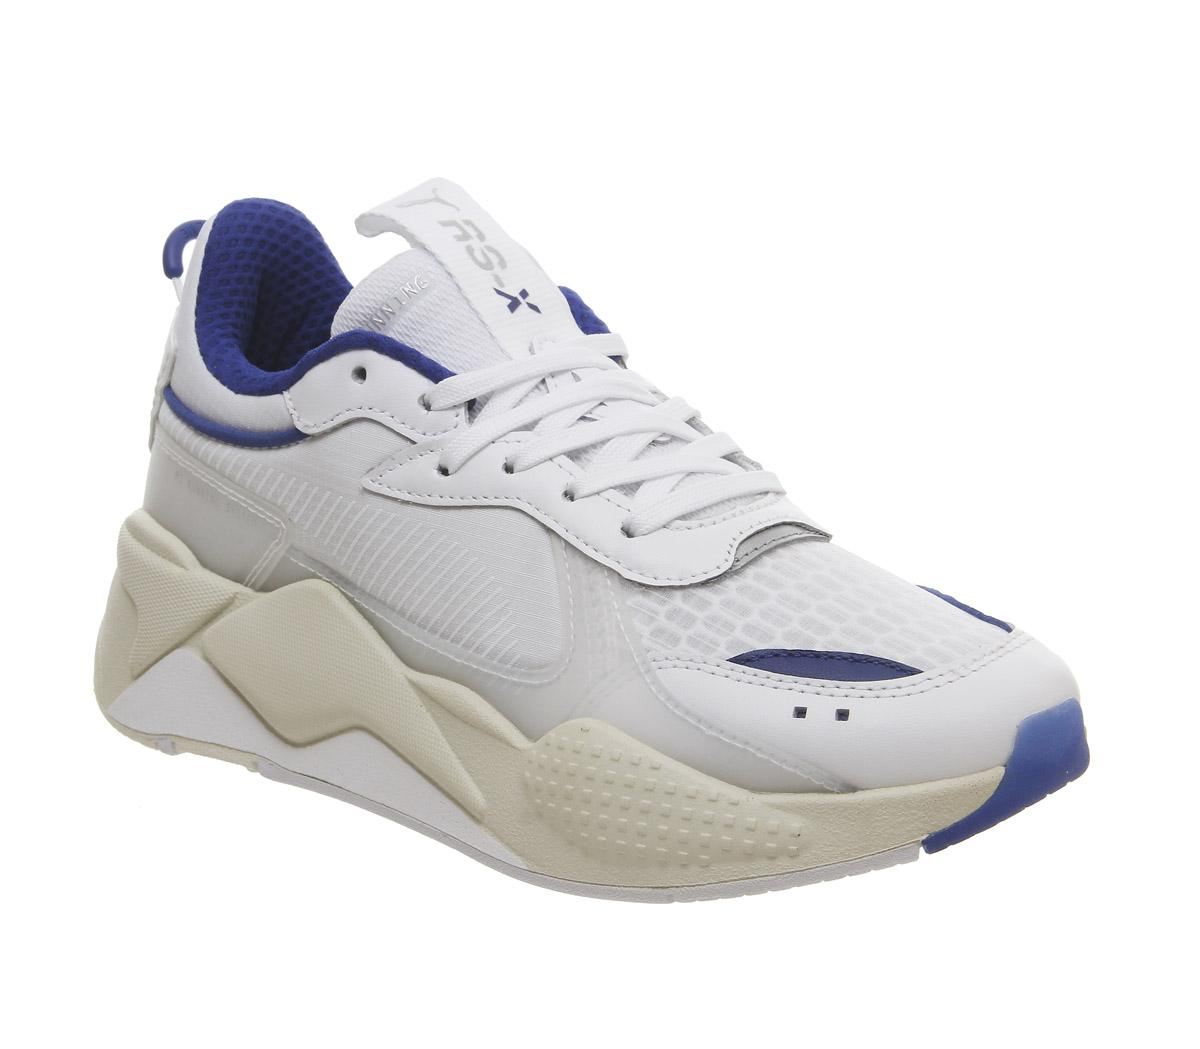 Puma RS X Tech Trainers in white   Sneakers